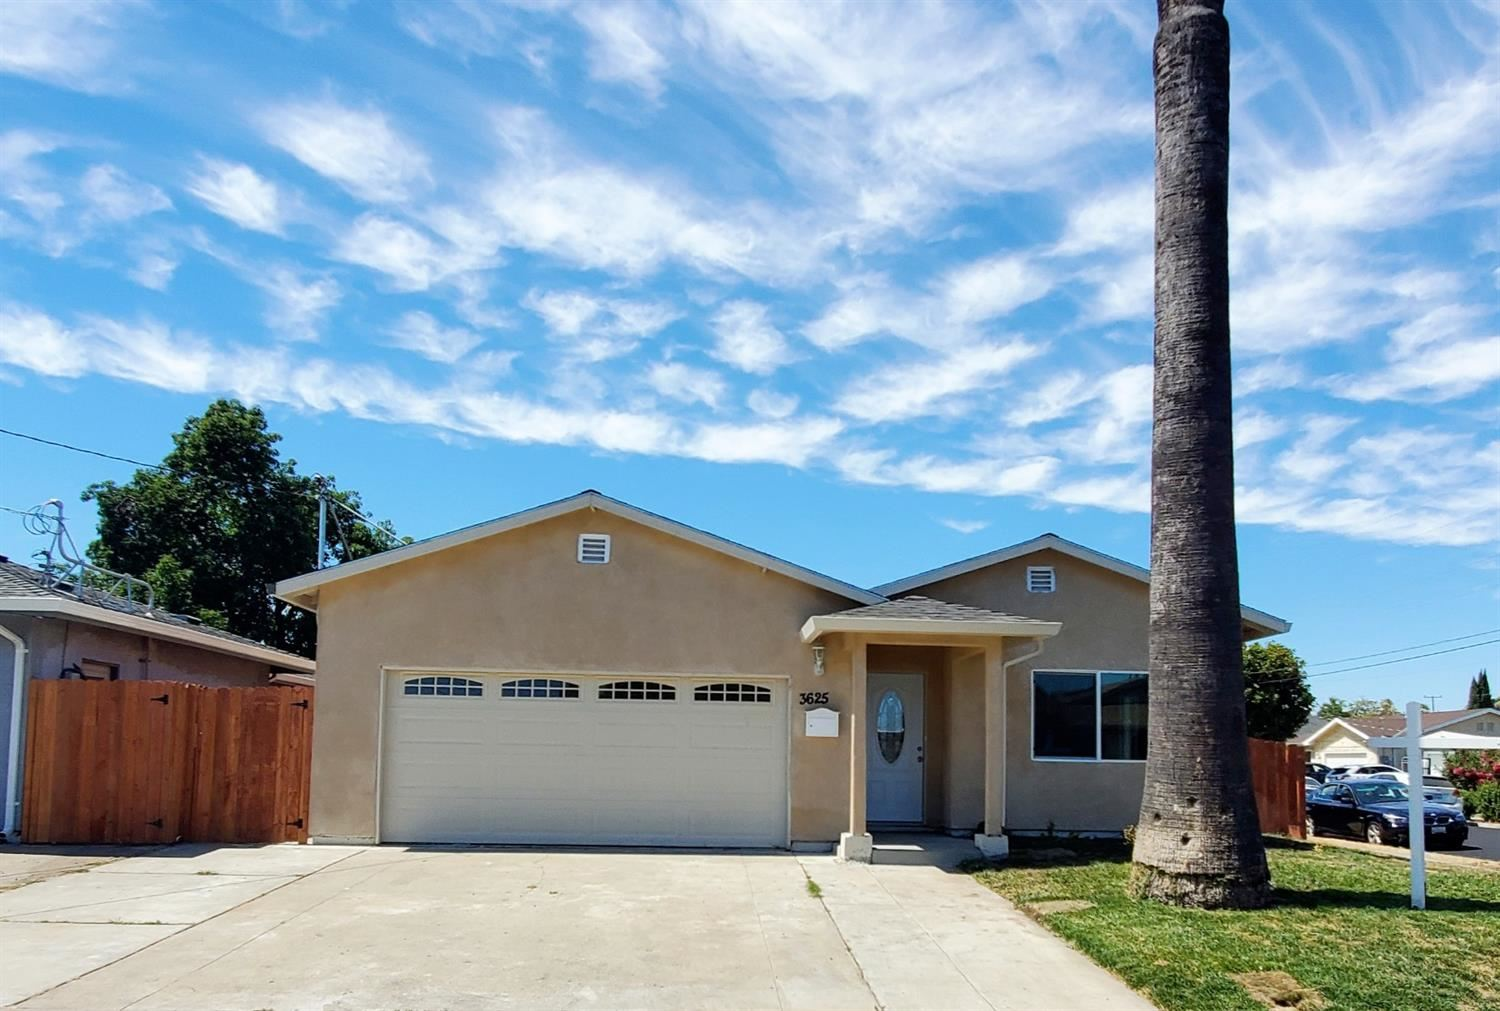 3625 Monmouth Place, Fremont, CA 94538 - MLS#: 221082648